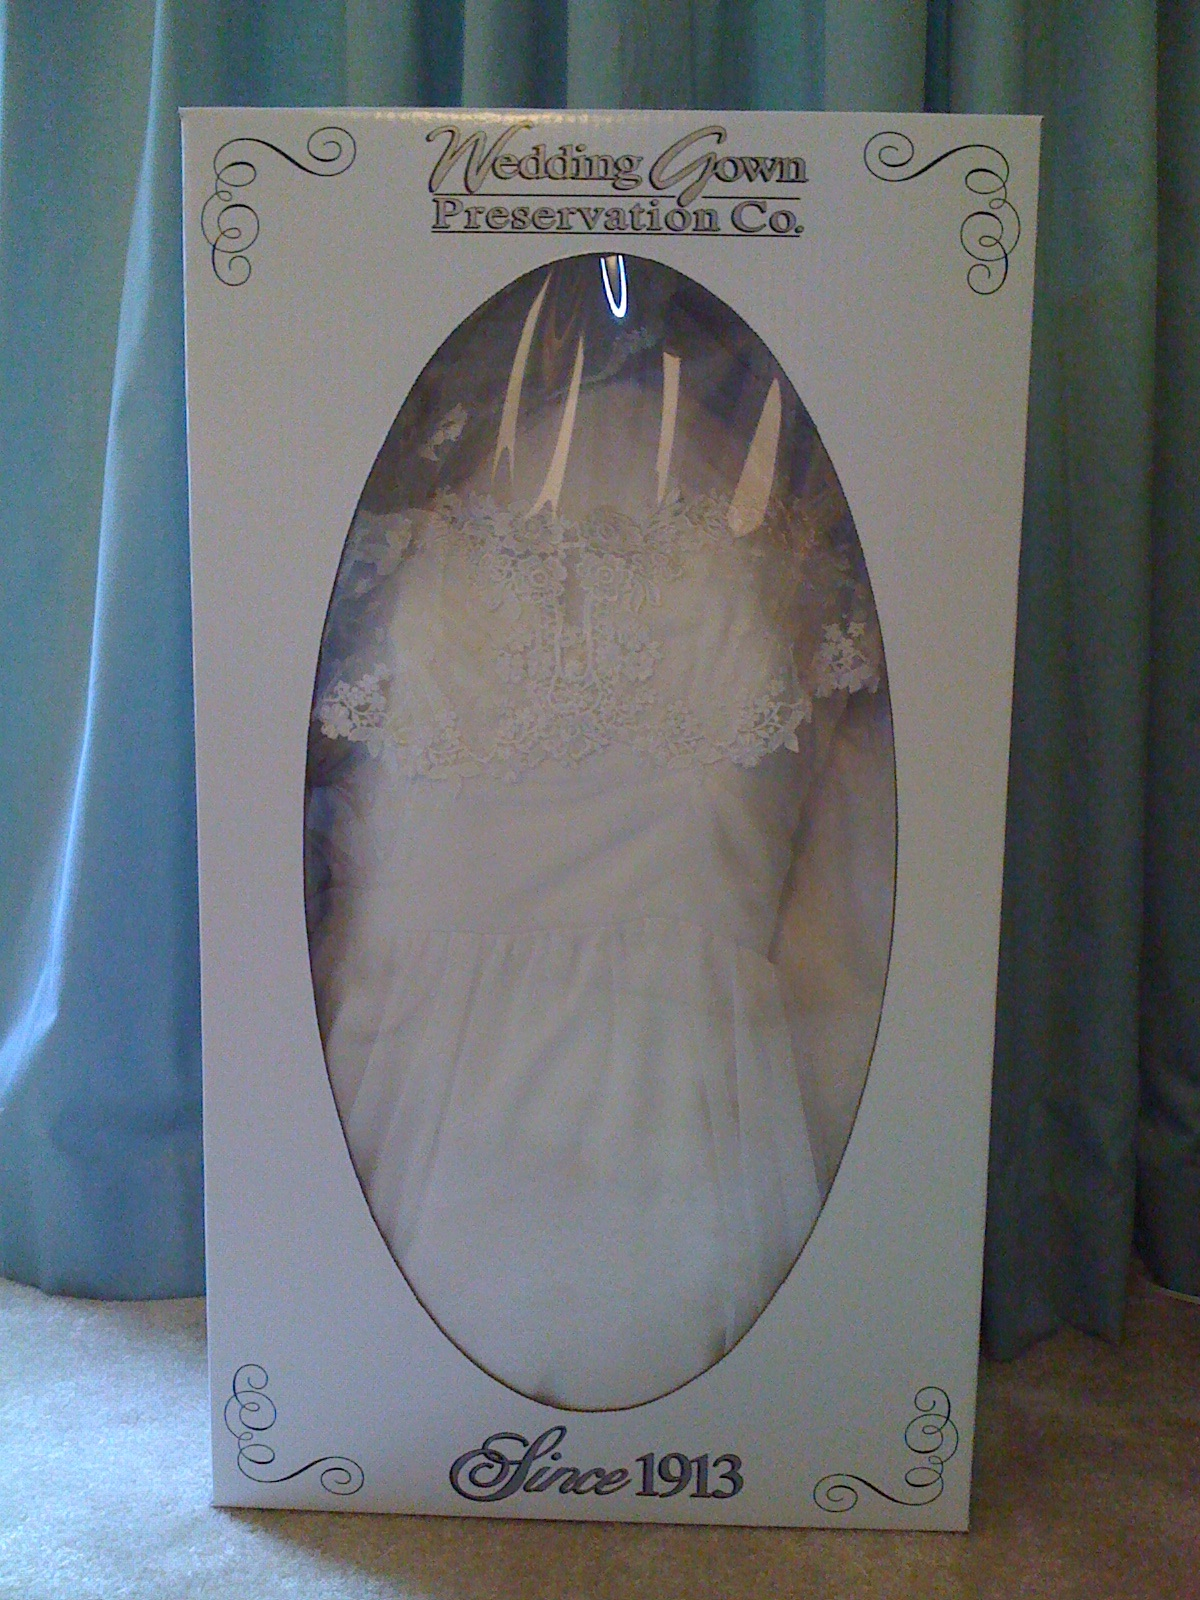 A splash of elegance wedding gown preservation for Wedding dress preservation company